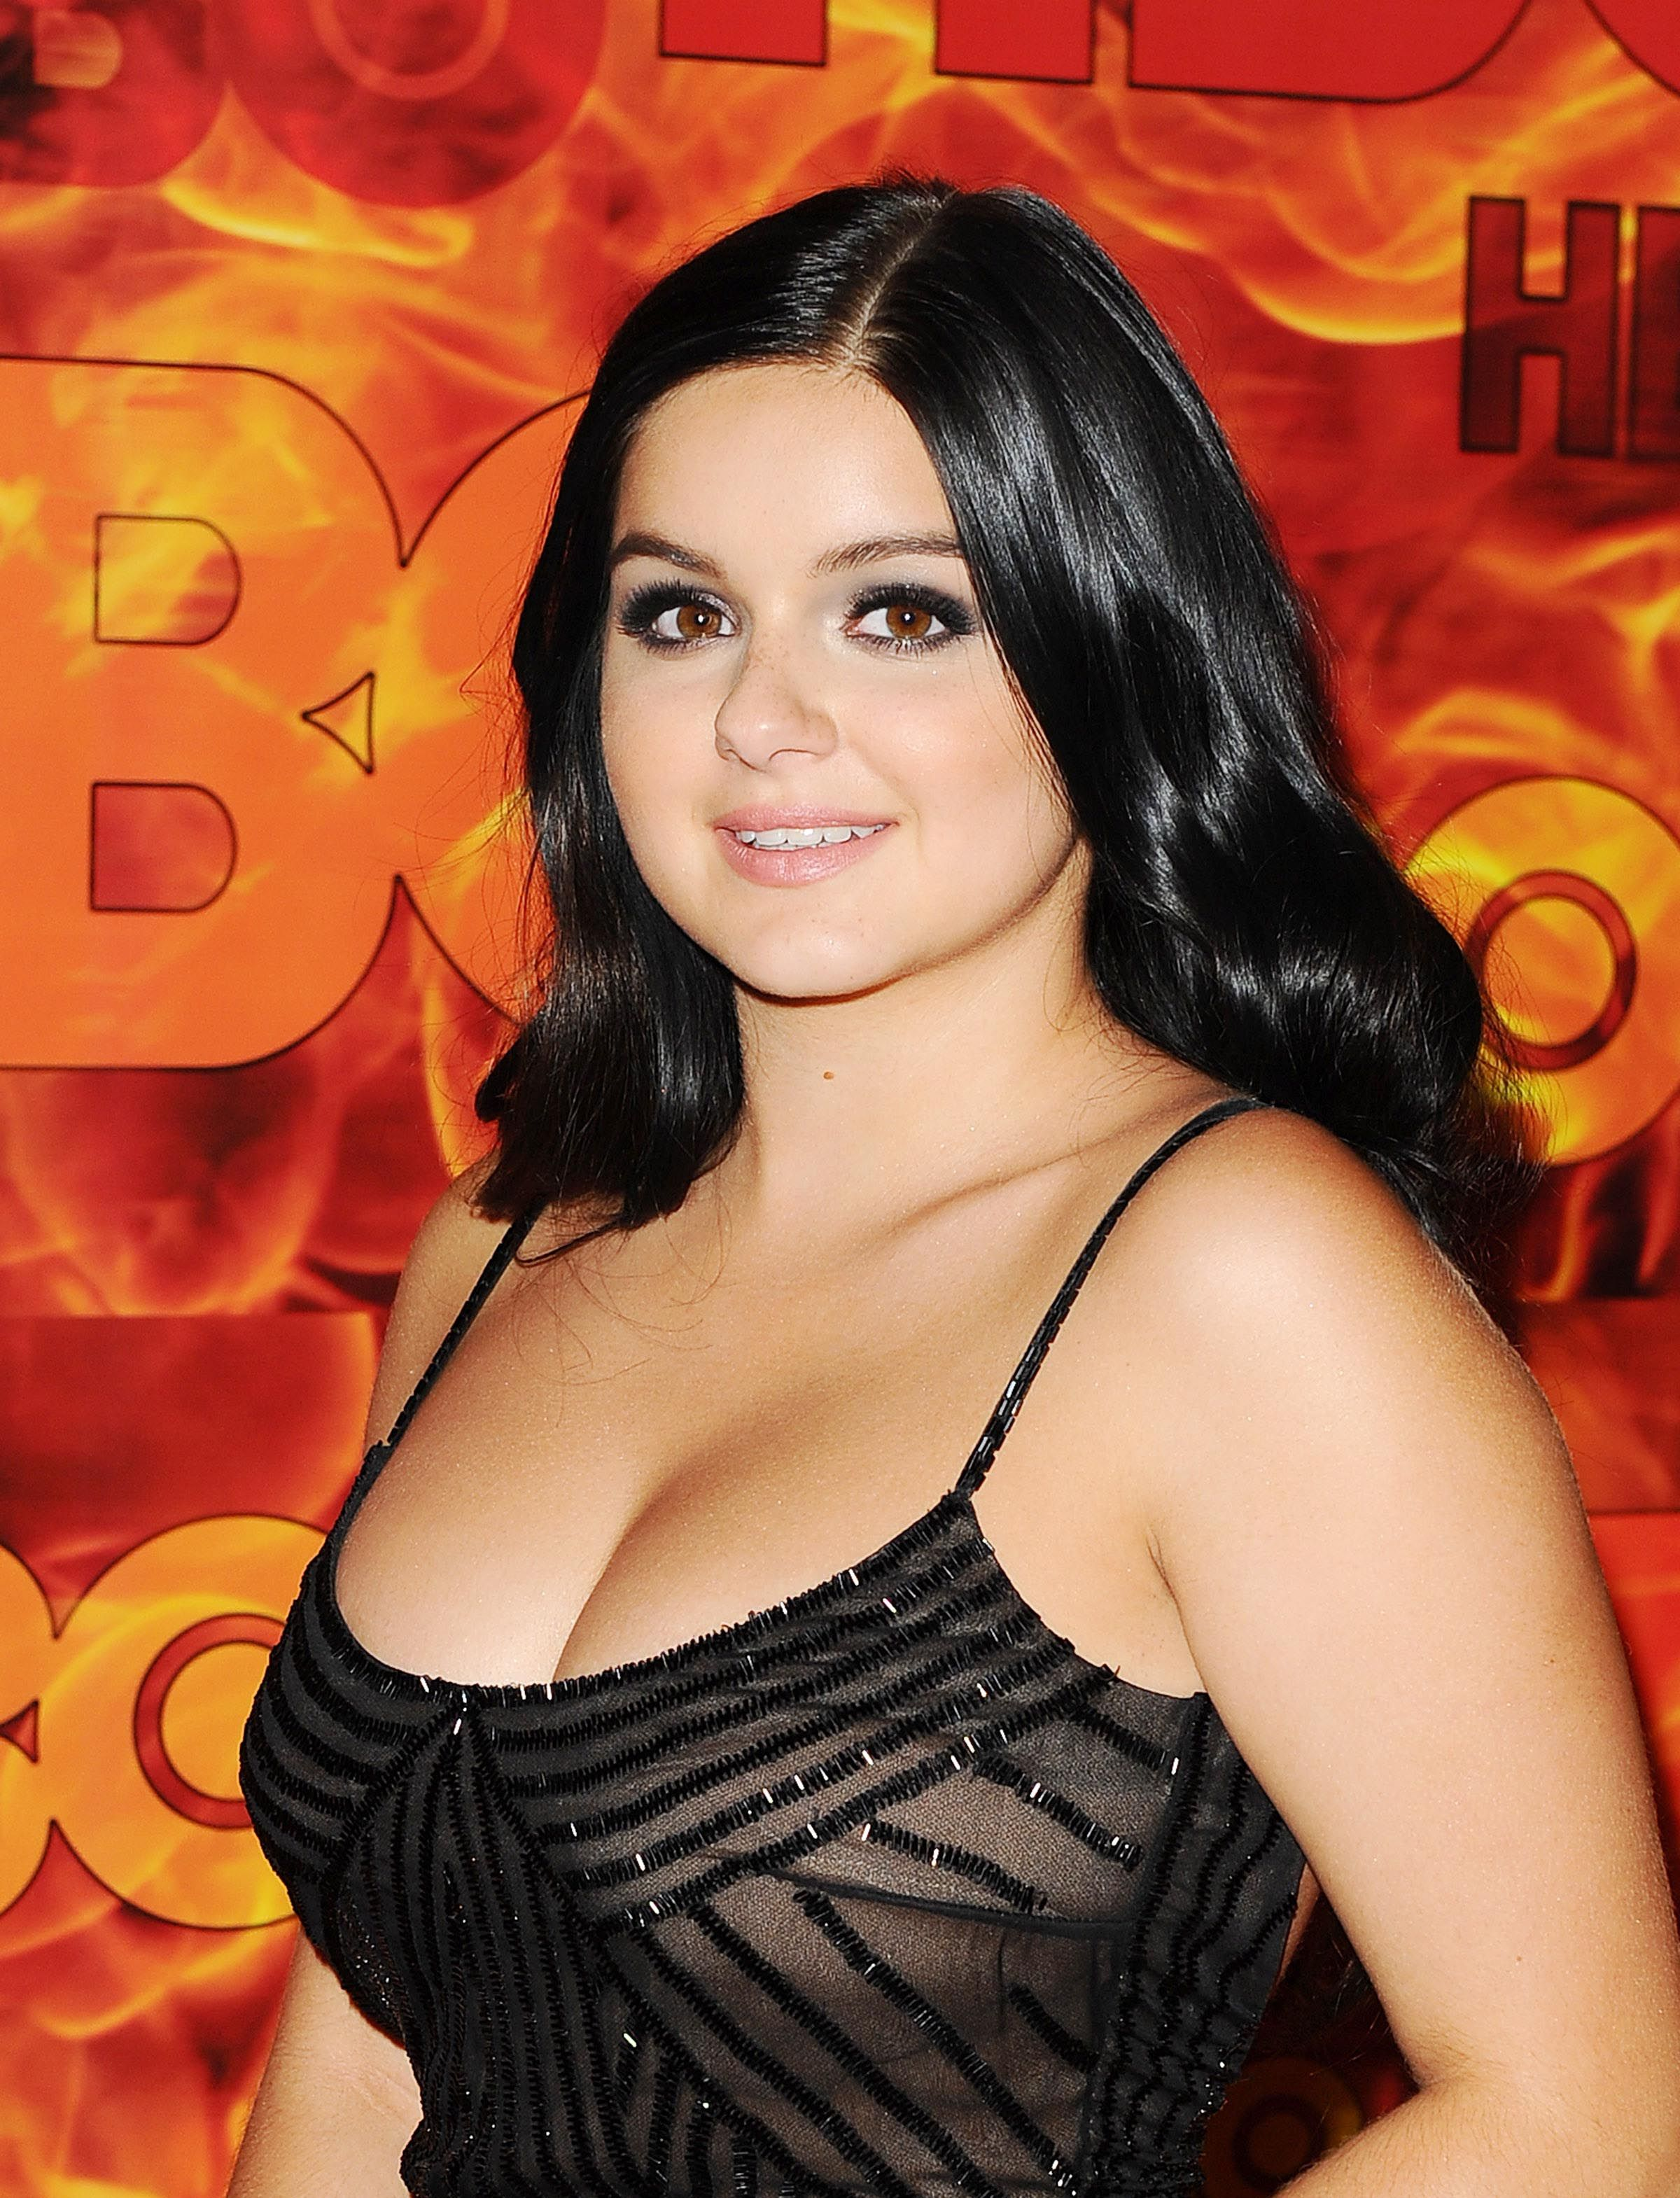 pinjussi hieta on big boobs tv star | pinterest | ariel winter